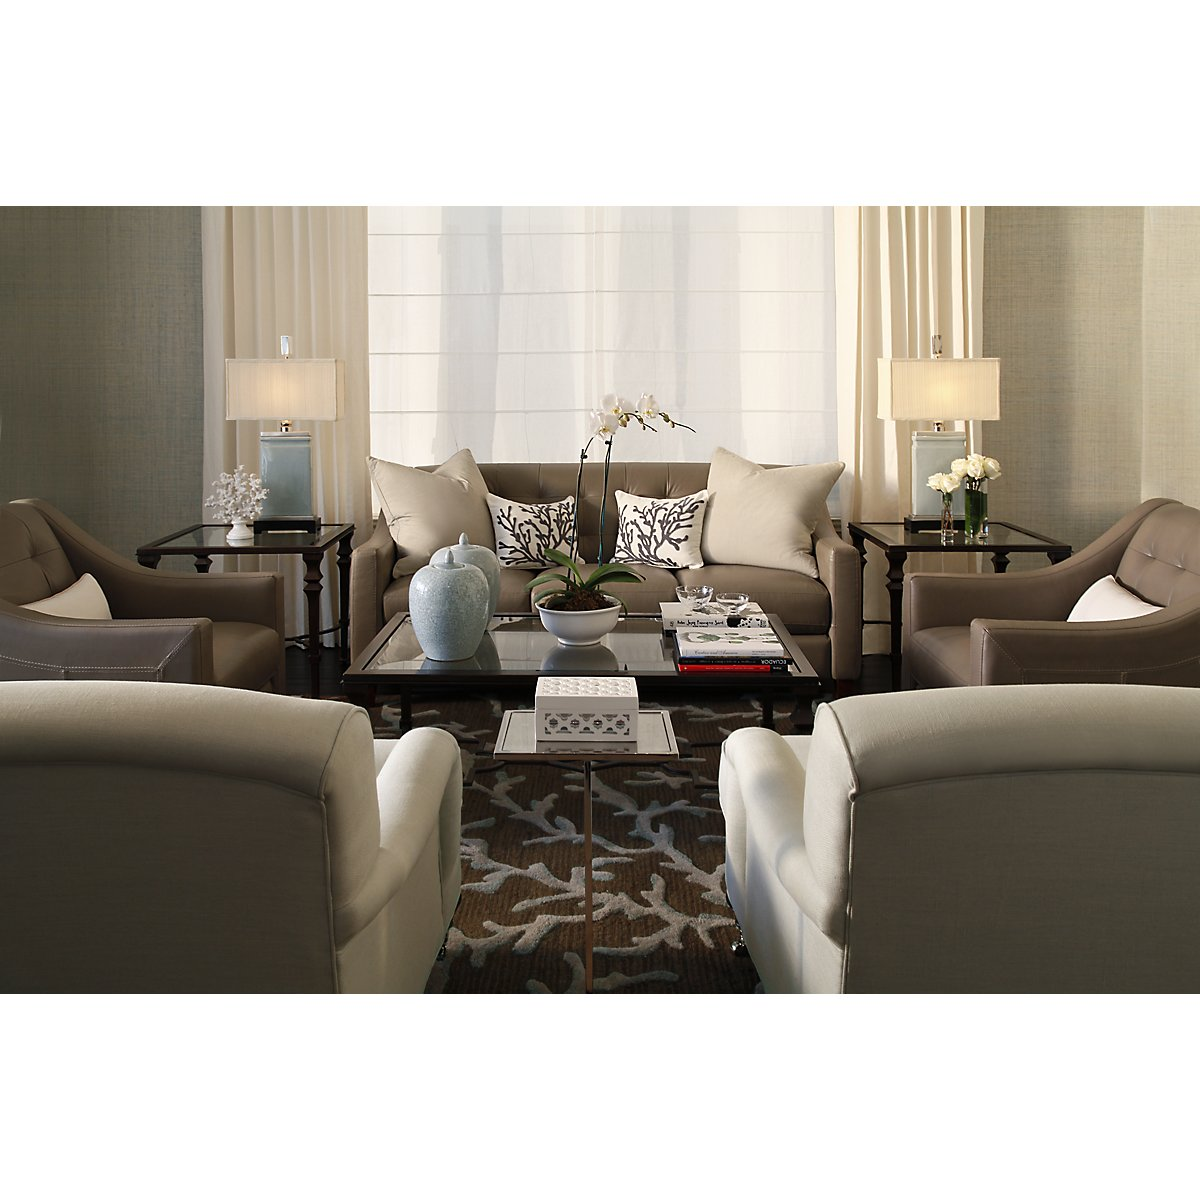 Pewter leather living room elise pewter leather living room geotapseo Choice Image